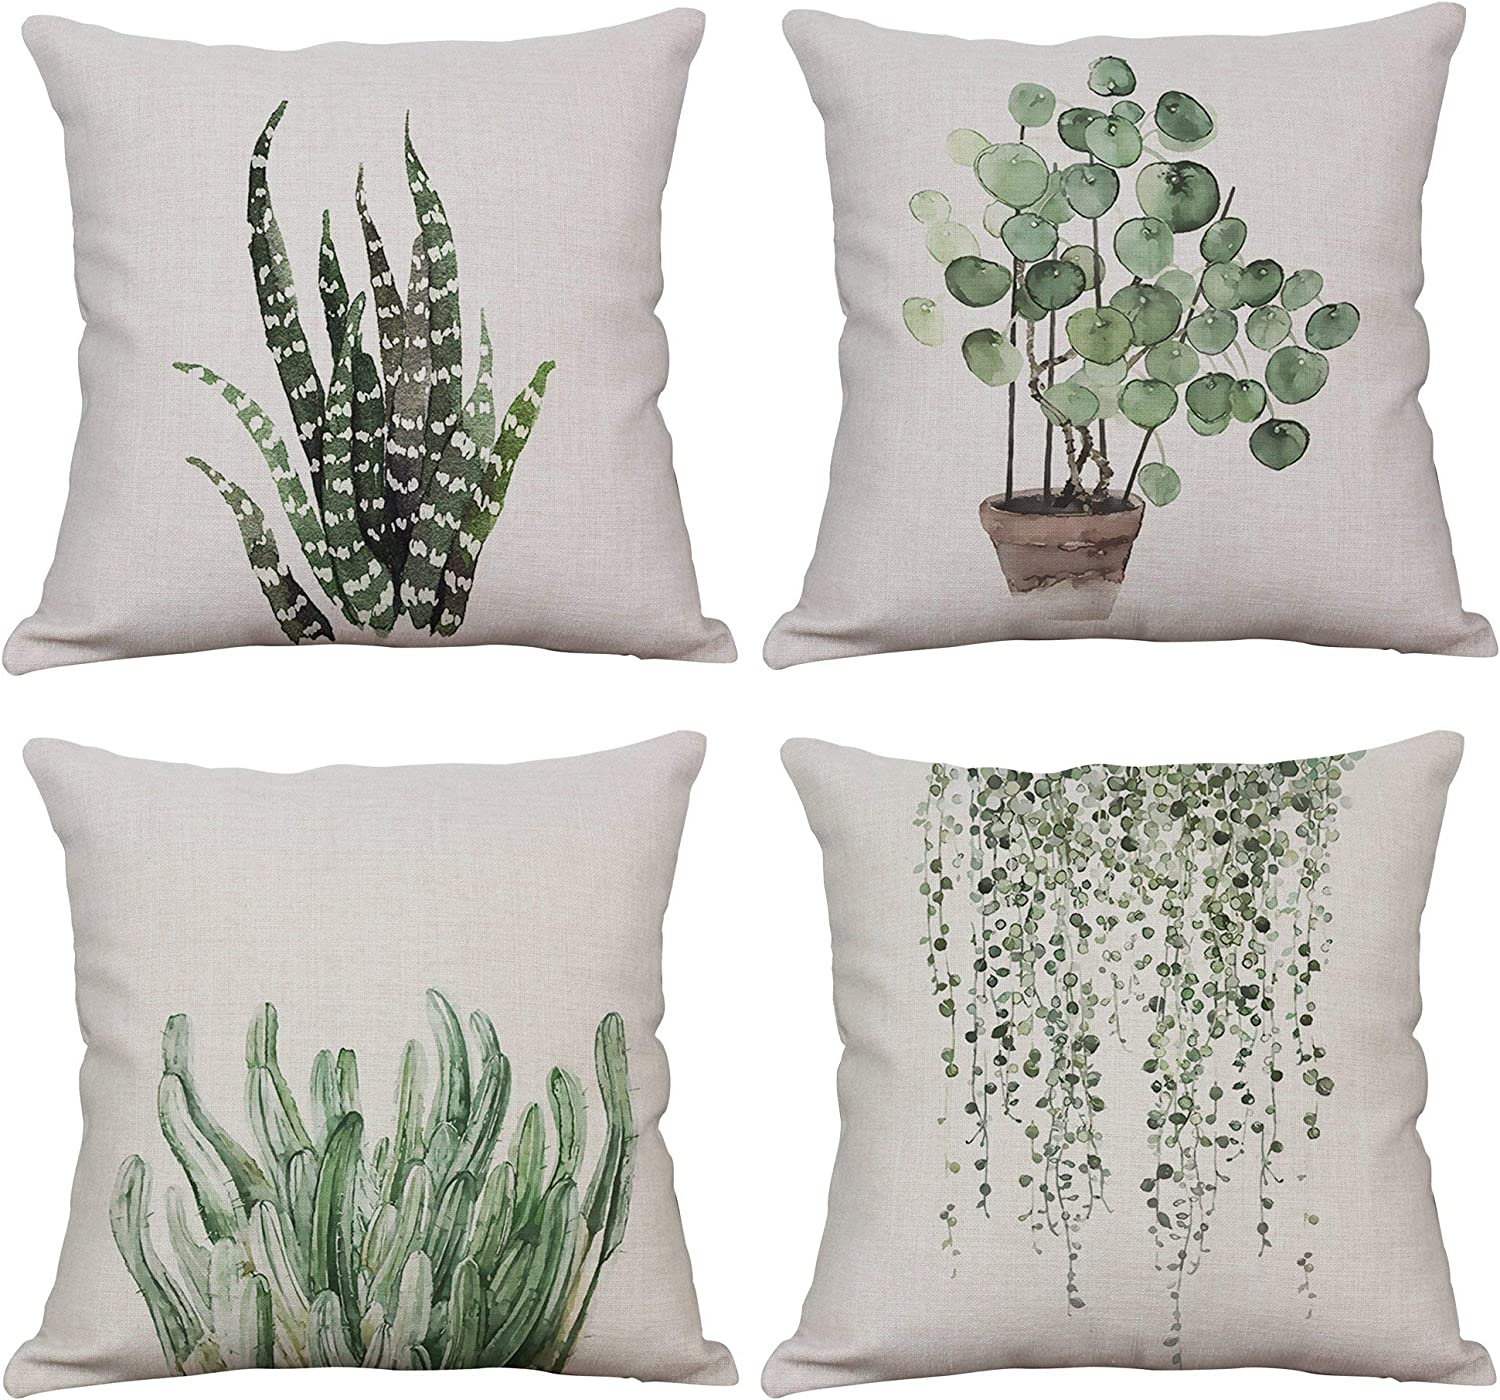 YeeJu Set of 4 Green Plant Throw Pillow Covers Decorative Cotton Linen Square Outdoor Cushion Cover Sofa Home Pillow Covers 20x20 Inch